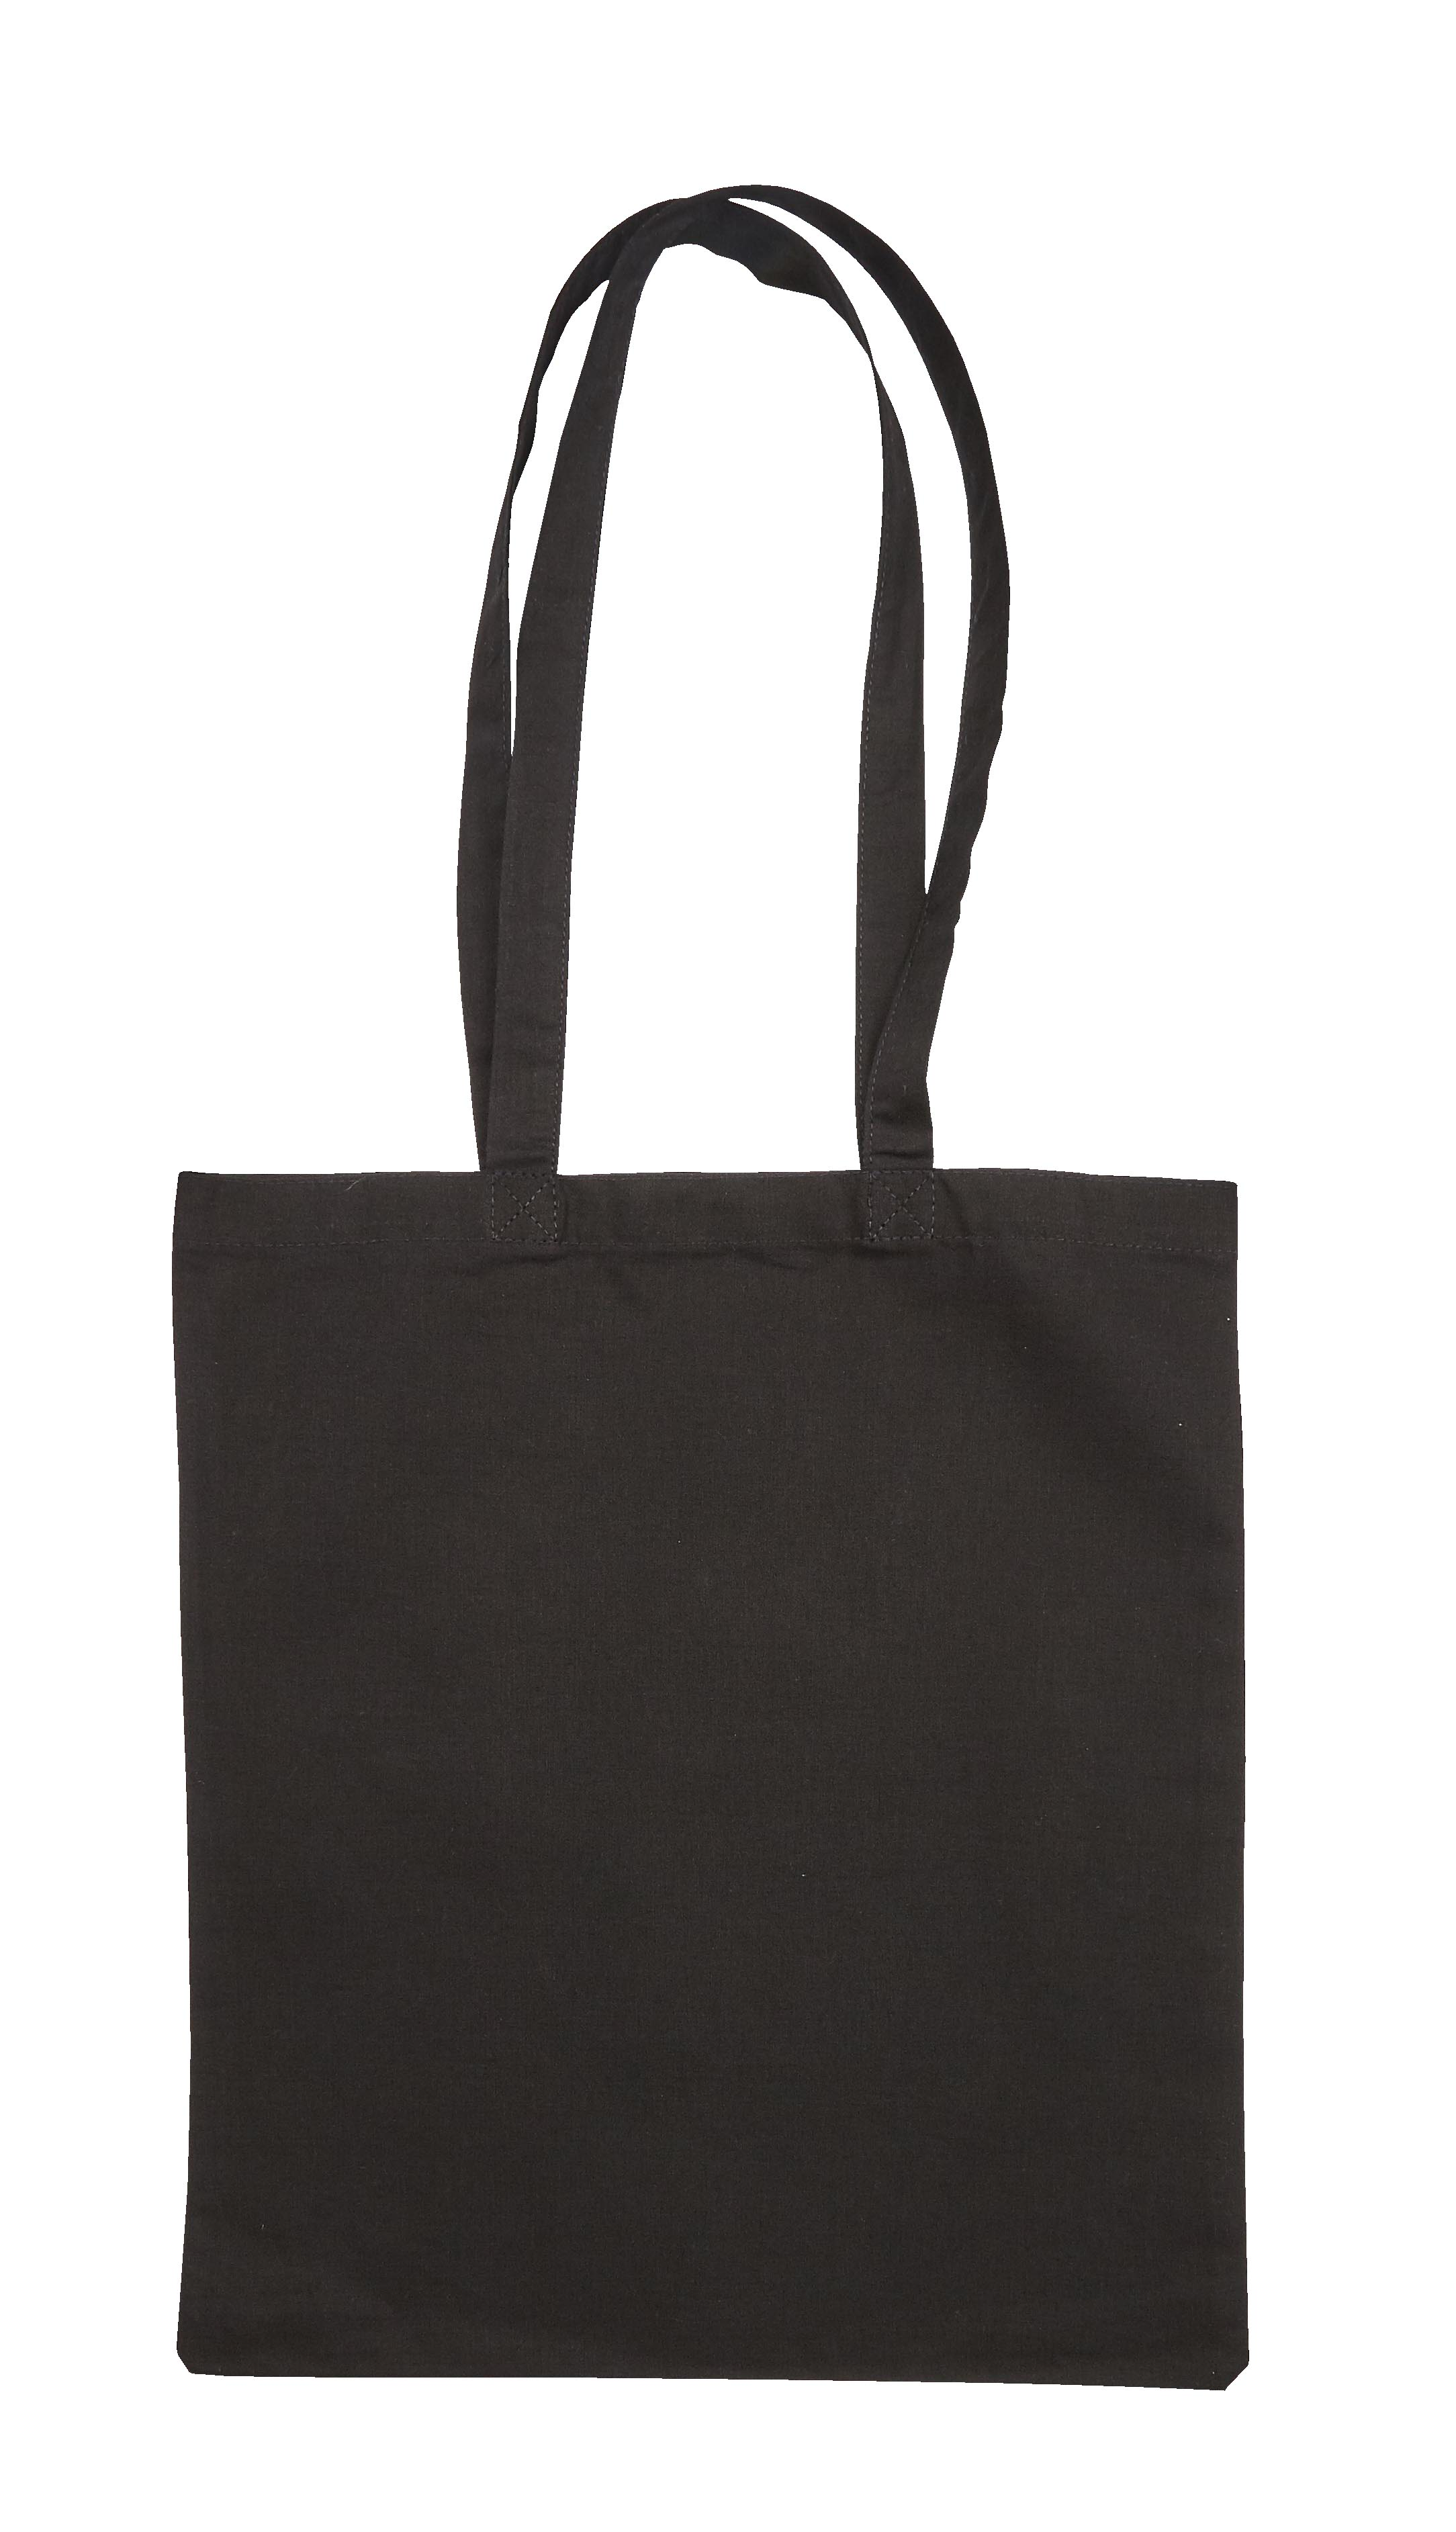 Black Jute Canvas Cotton Shopper Bag